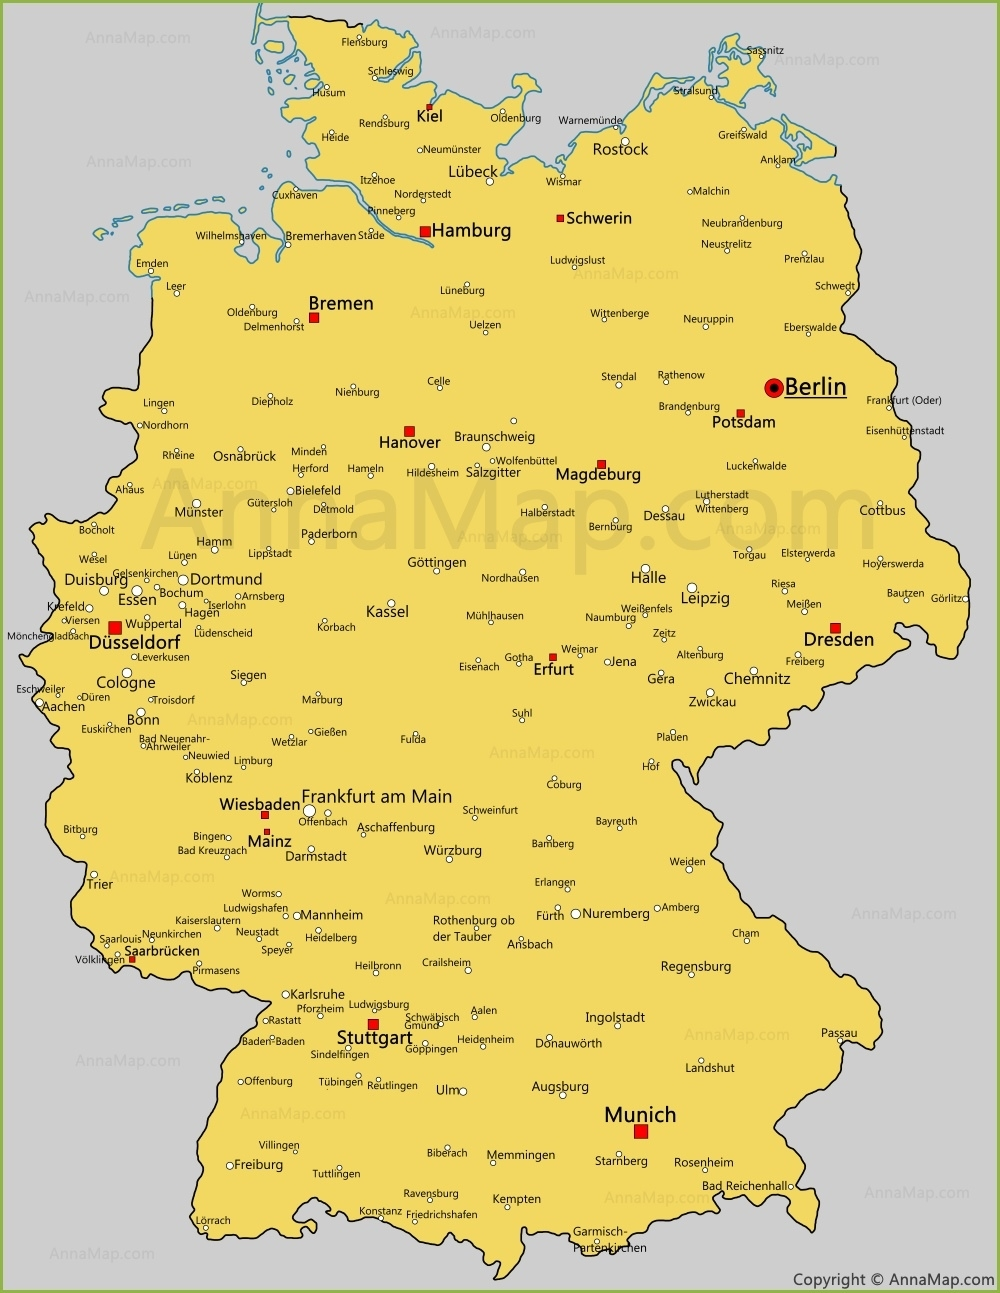 Germany Cities Map | Cities And Towns In Germany - Annamap in Germany Map Cities Towns